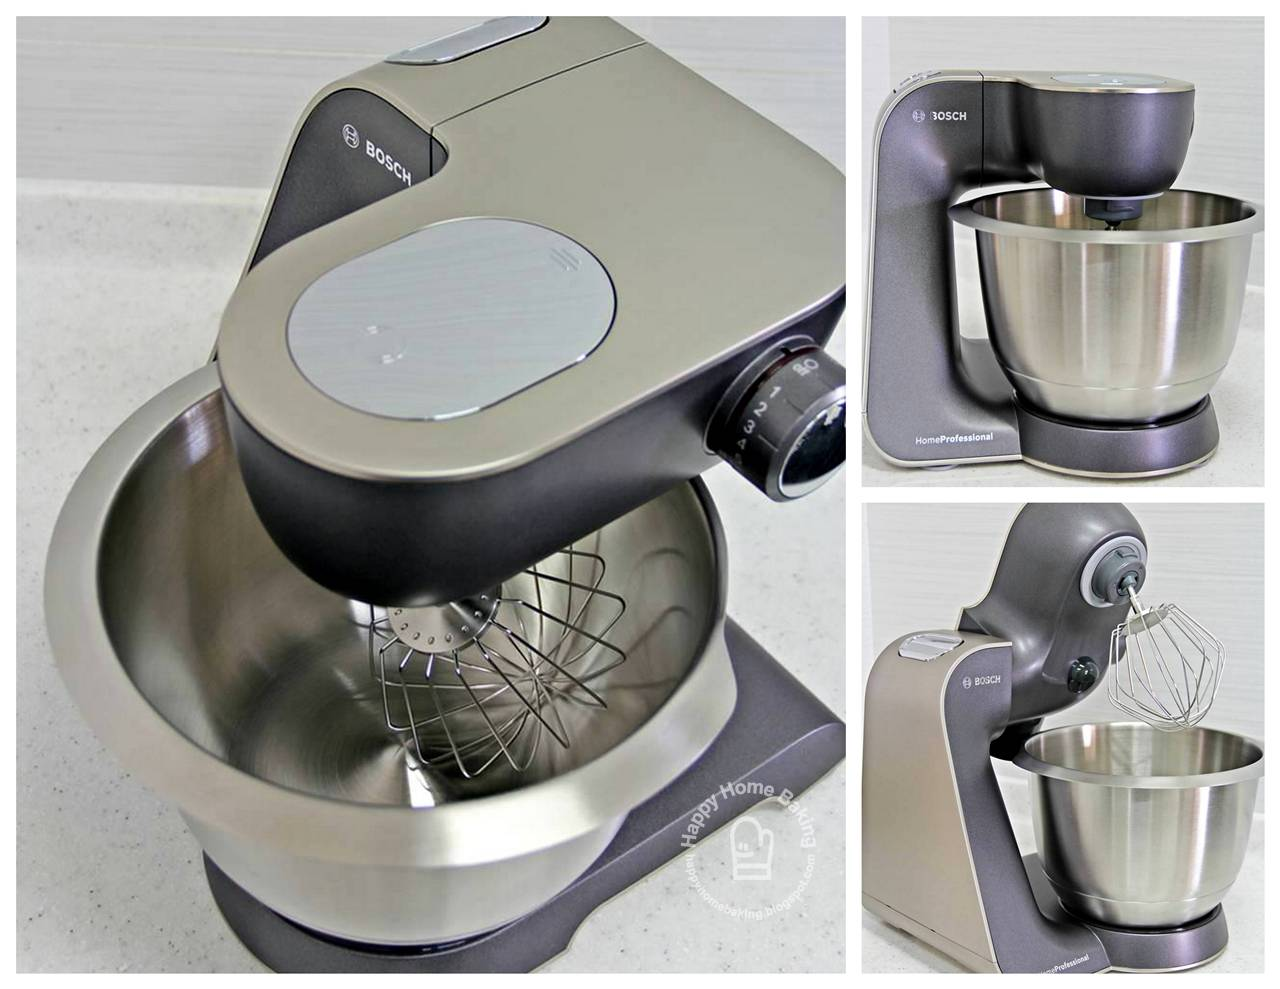 Uncategorized Bosch Kitchen Appliances Reviews happy home baking my new kitchen helper frankly i wasnt sure whether would be using the machine that regularly as hardly even use old handheld electric mixer really dont like idea